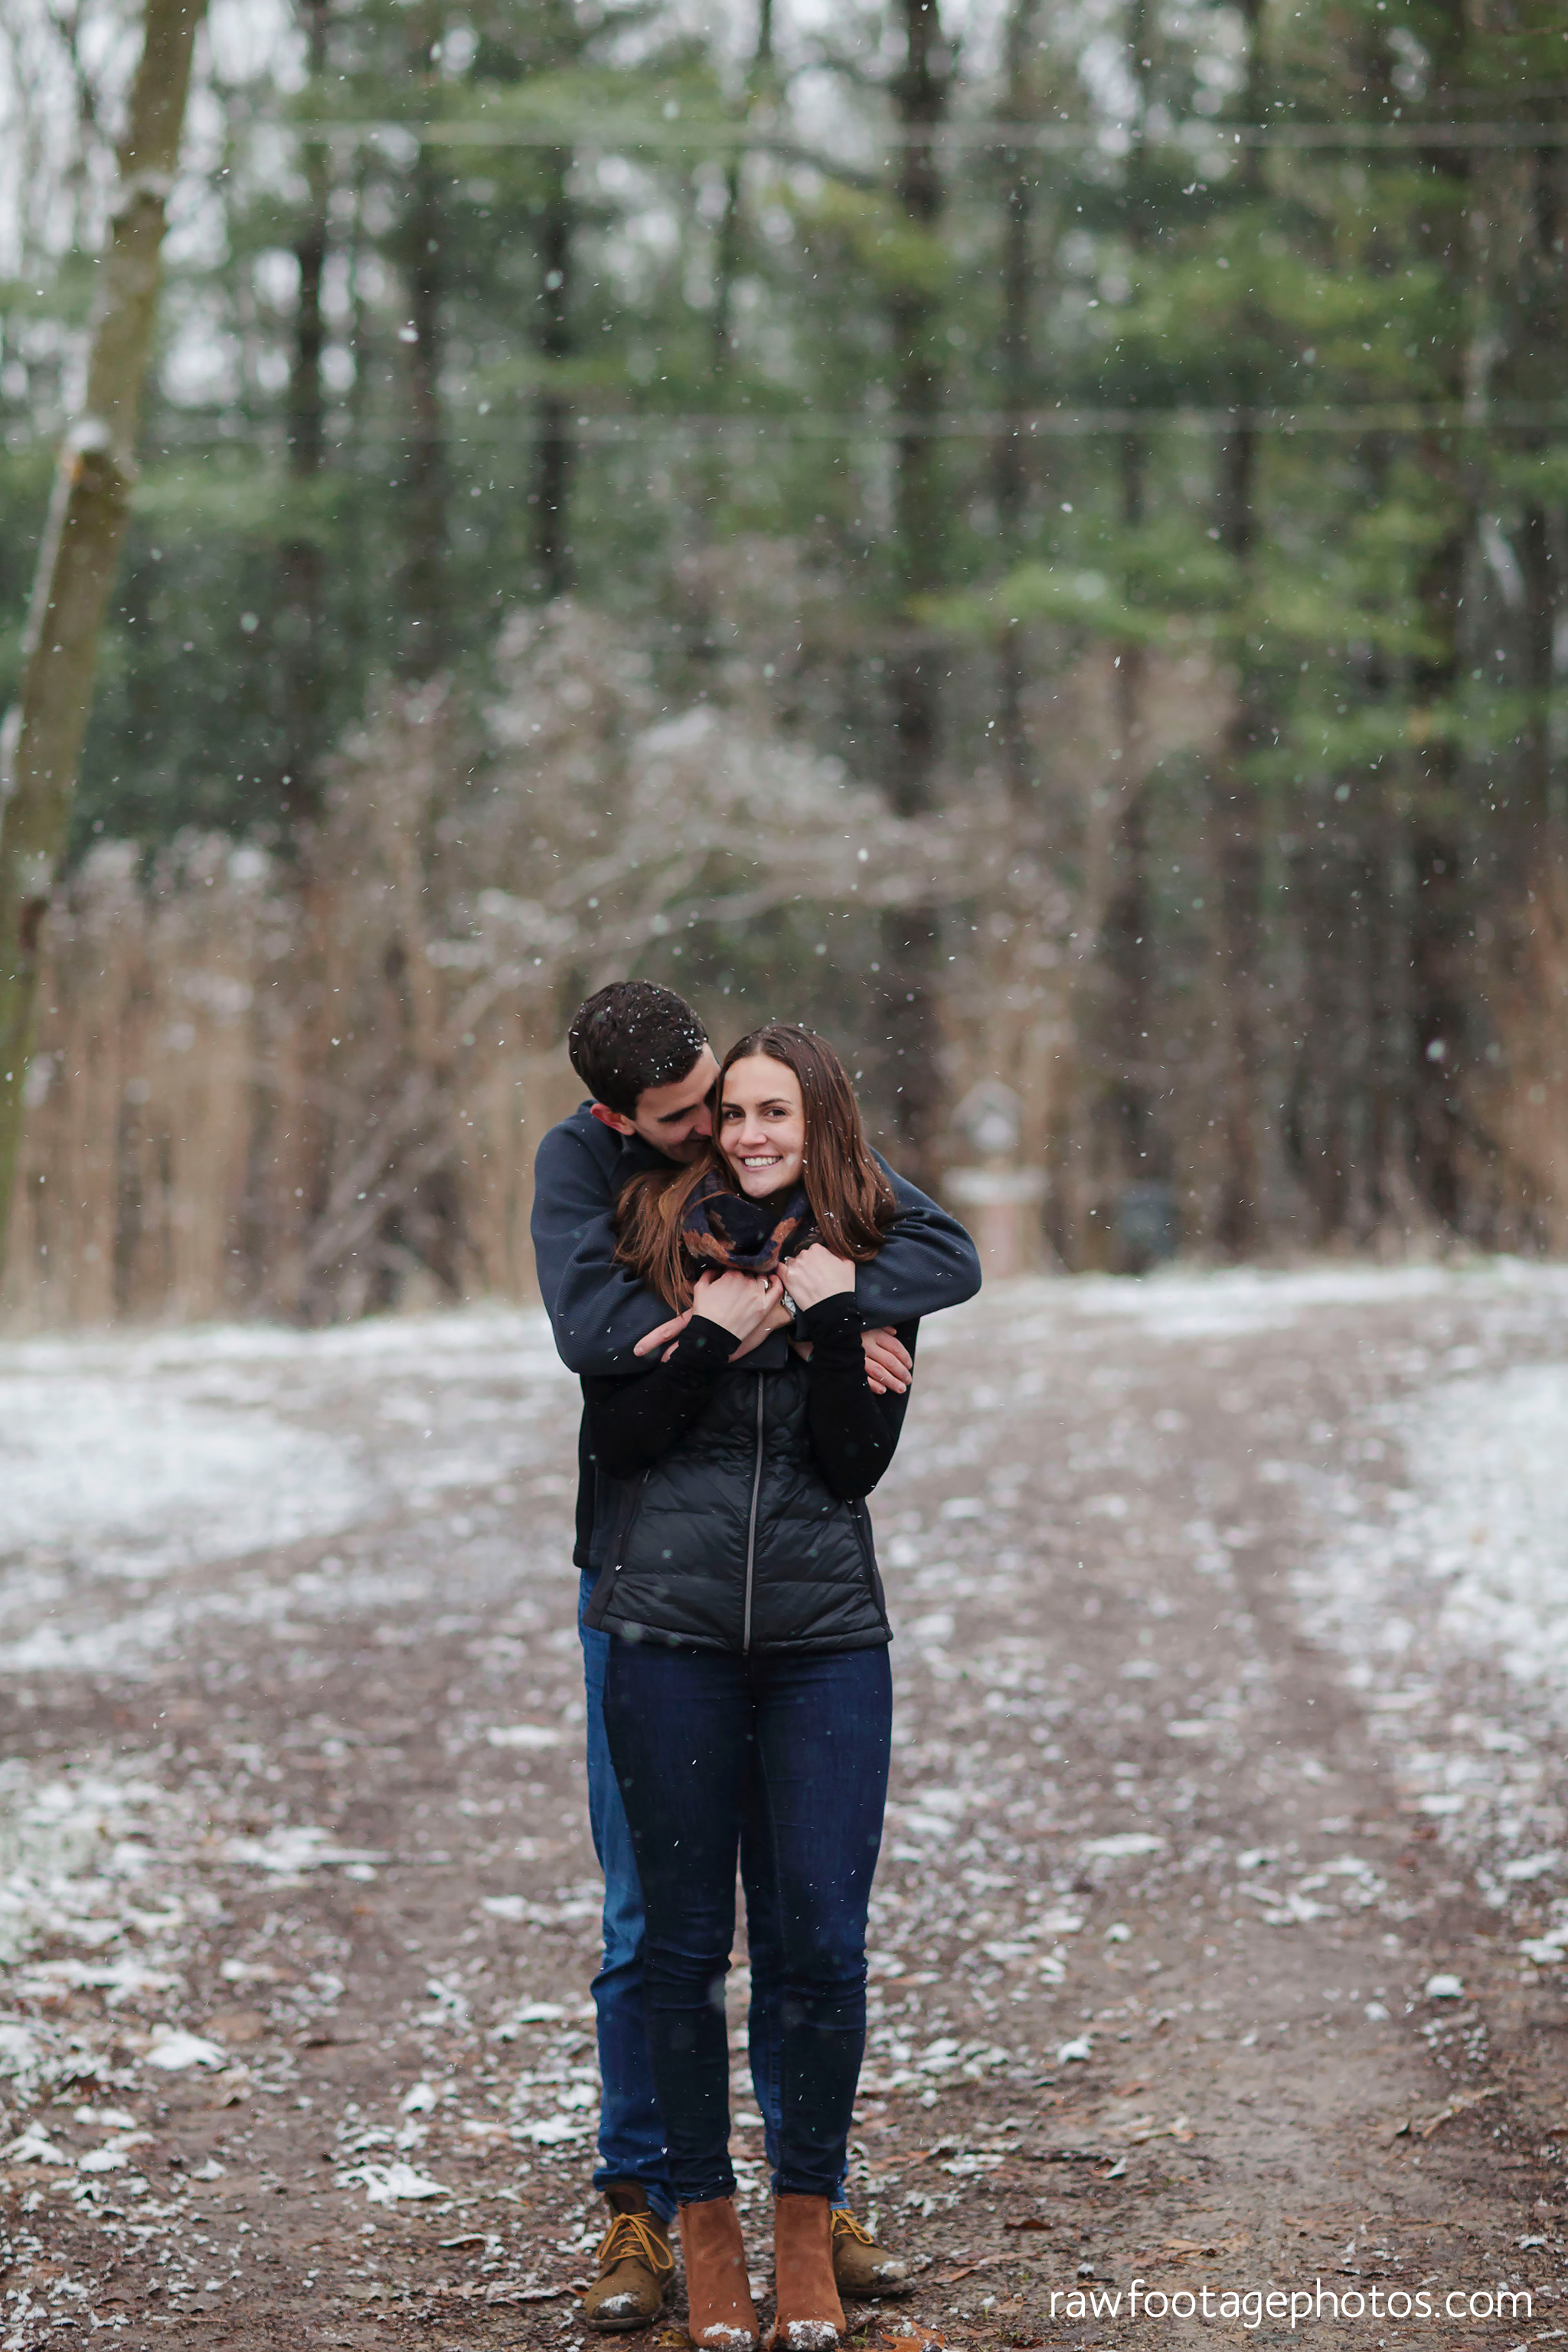 london_ontario_wedding_photographer-snowy_engagement_session-winter-barn-farm-snowflakes-blizzard-raw_footage_photography020.jpg